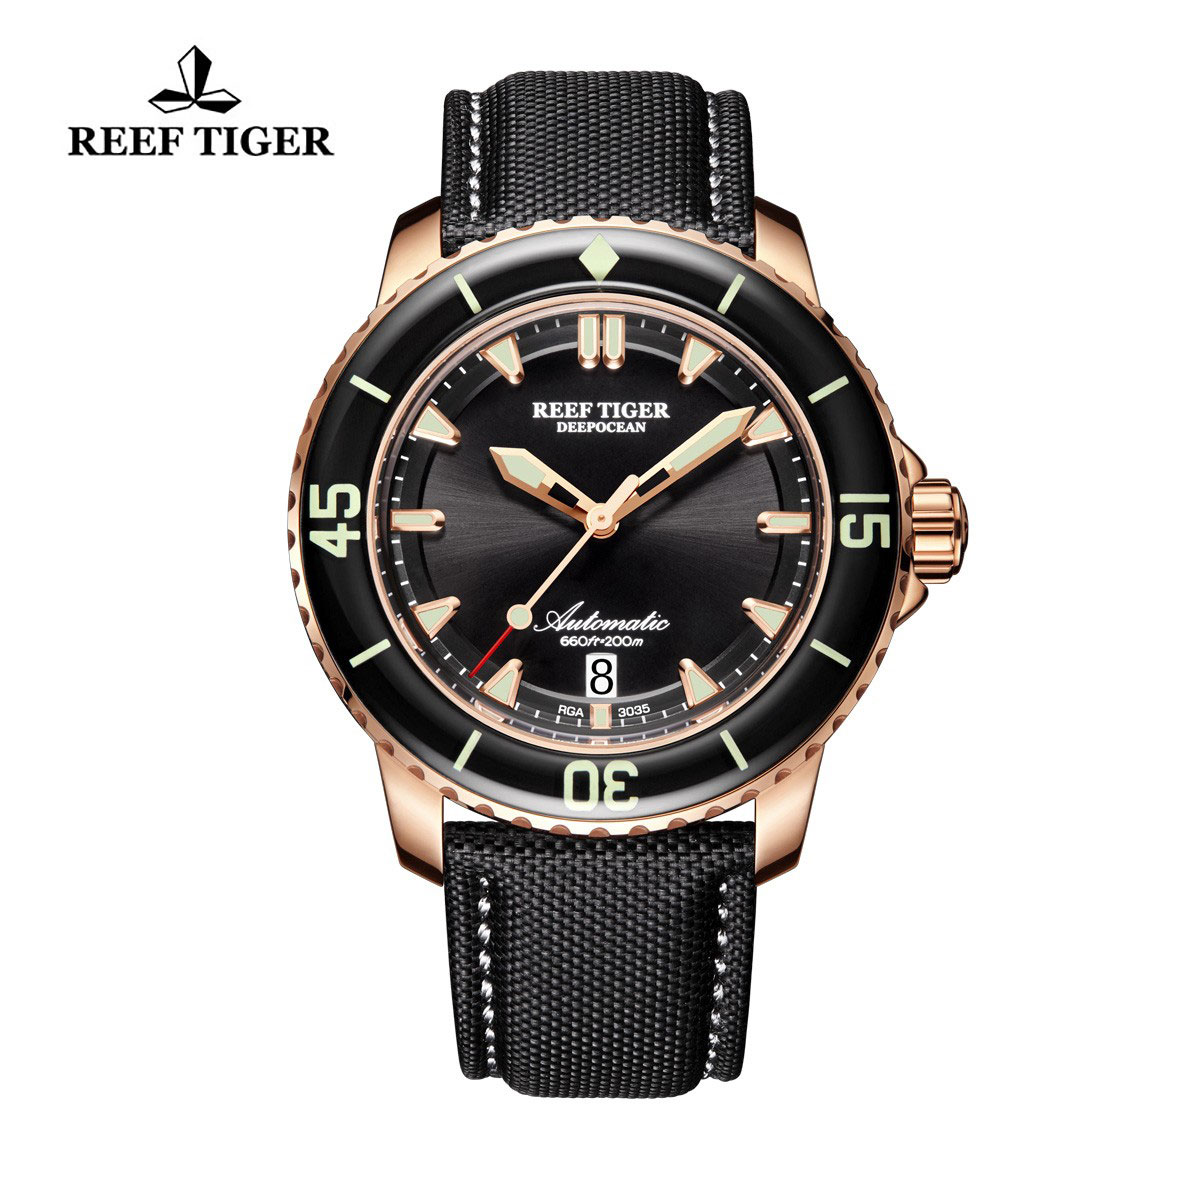 Reef Tiger Deep Ocean Casual Watches Automatic Watch Rose Gold Case RGA3035-PBBW